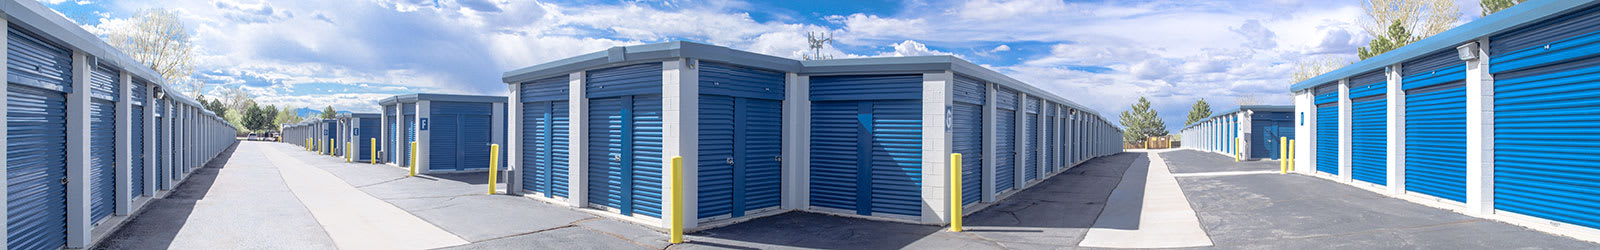 Pay Online at Security Self Storage